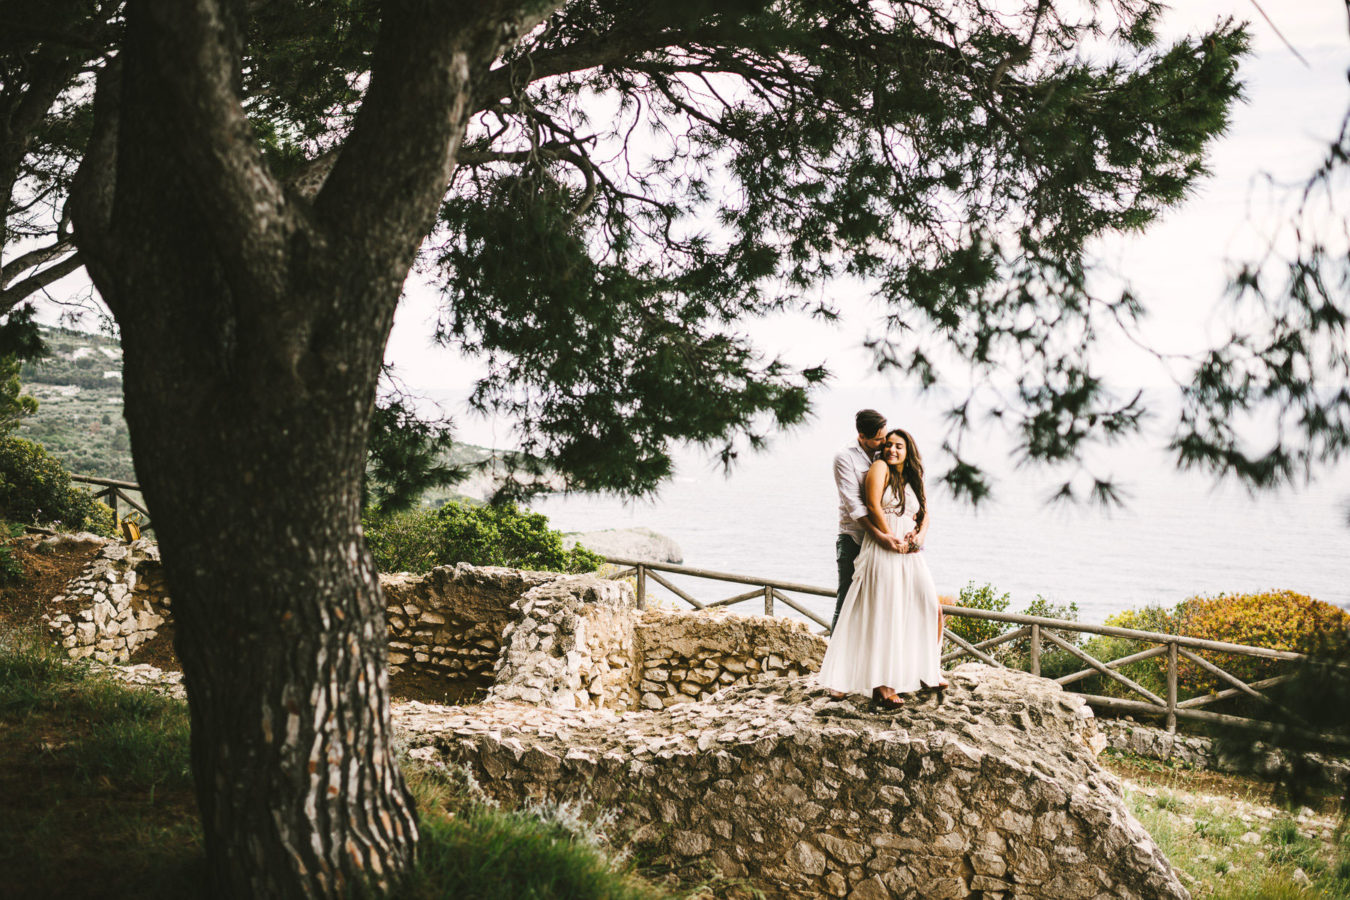 Amazing and romantic couple portrait engagement pre-wedding photo tour in Capri island